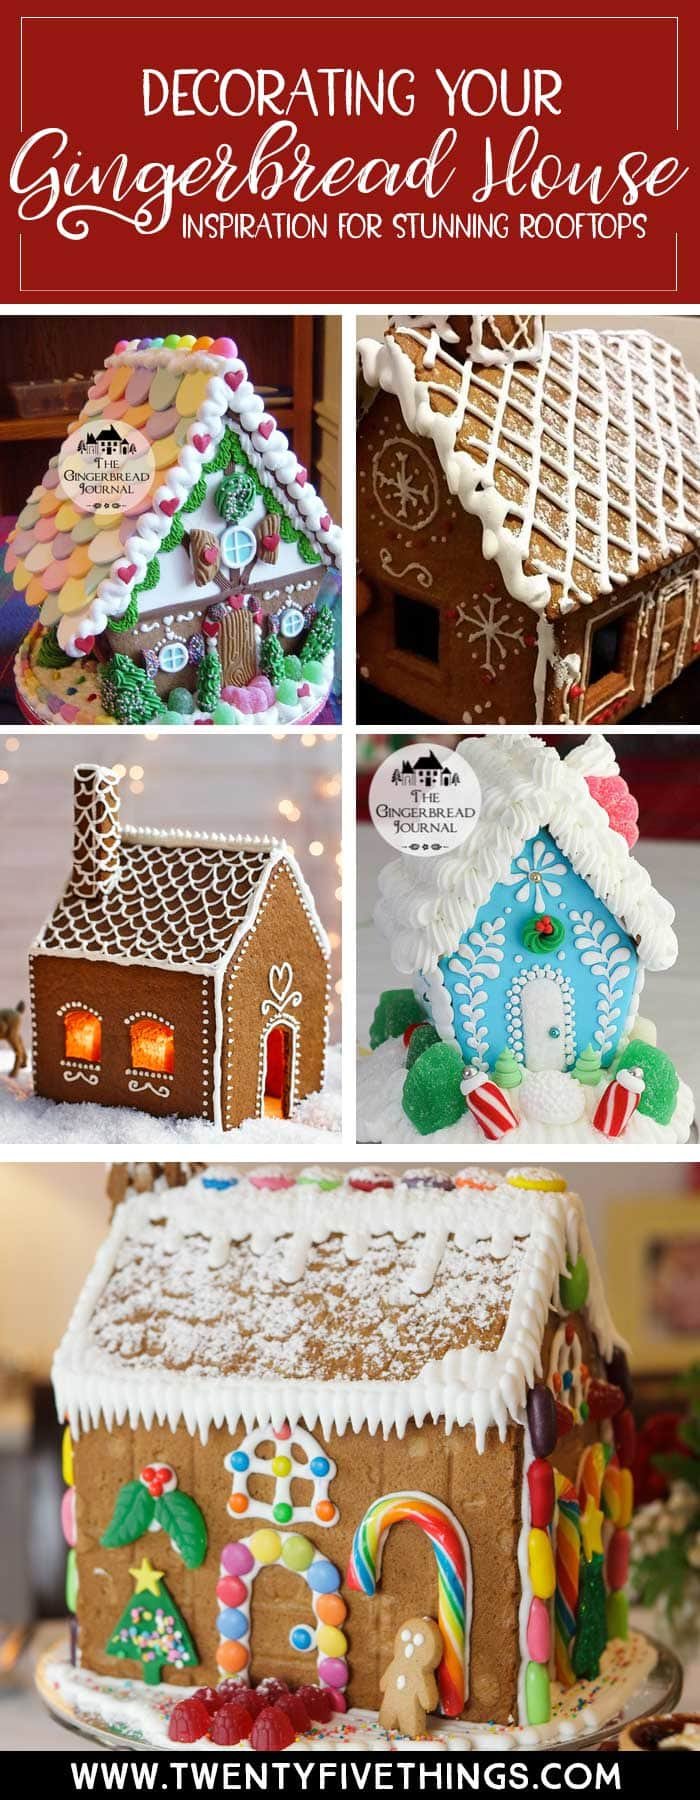 25 Gingerbread House Ideas, Tips, and Tricks - Fun Loving ...